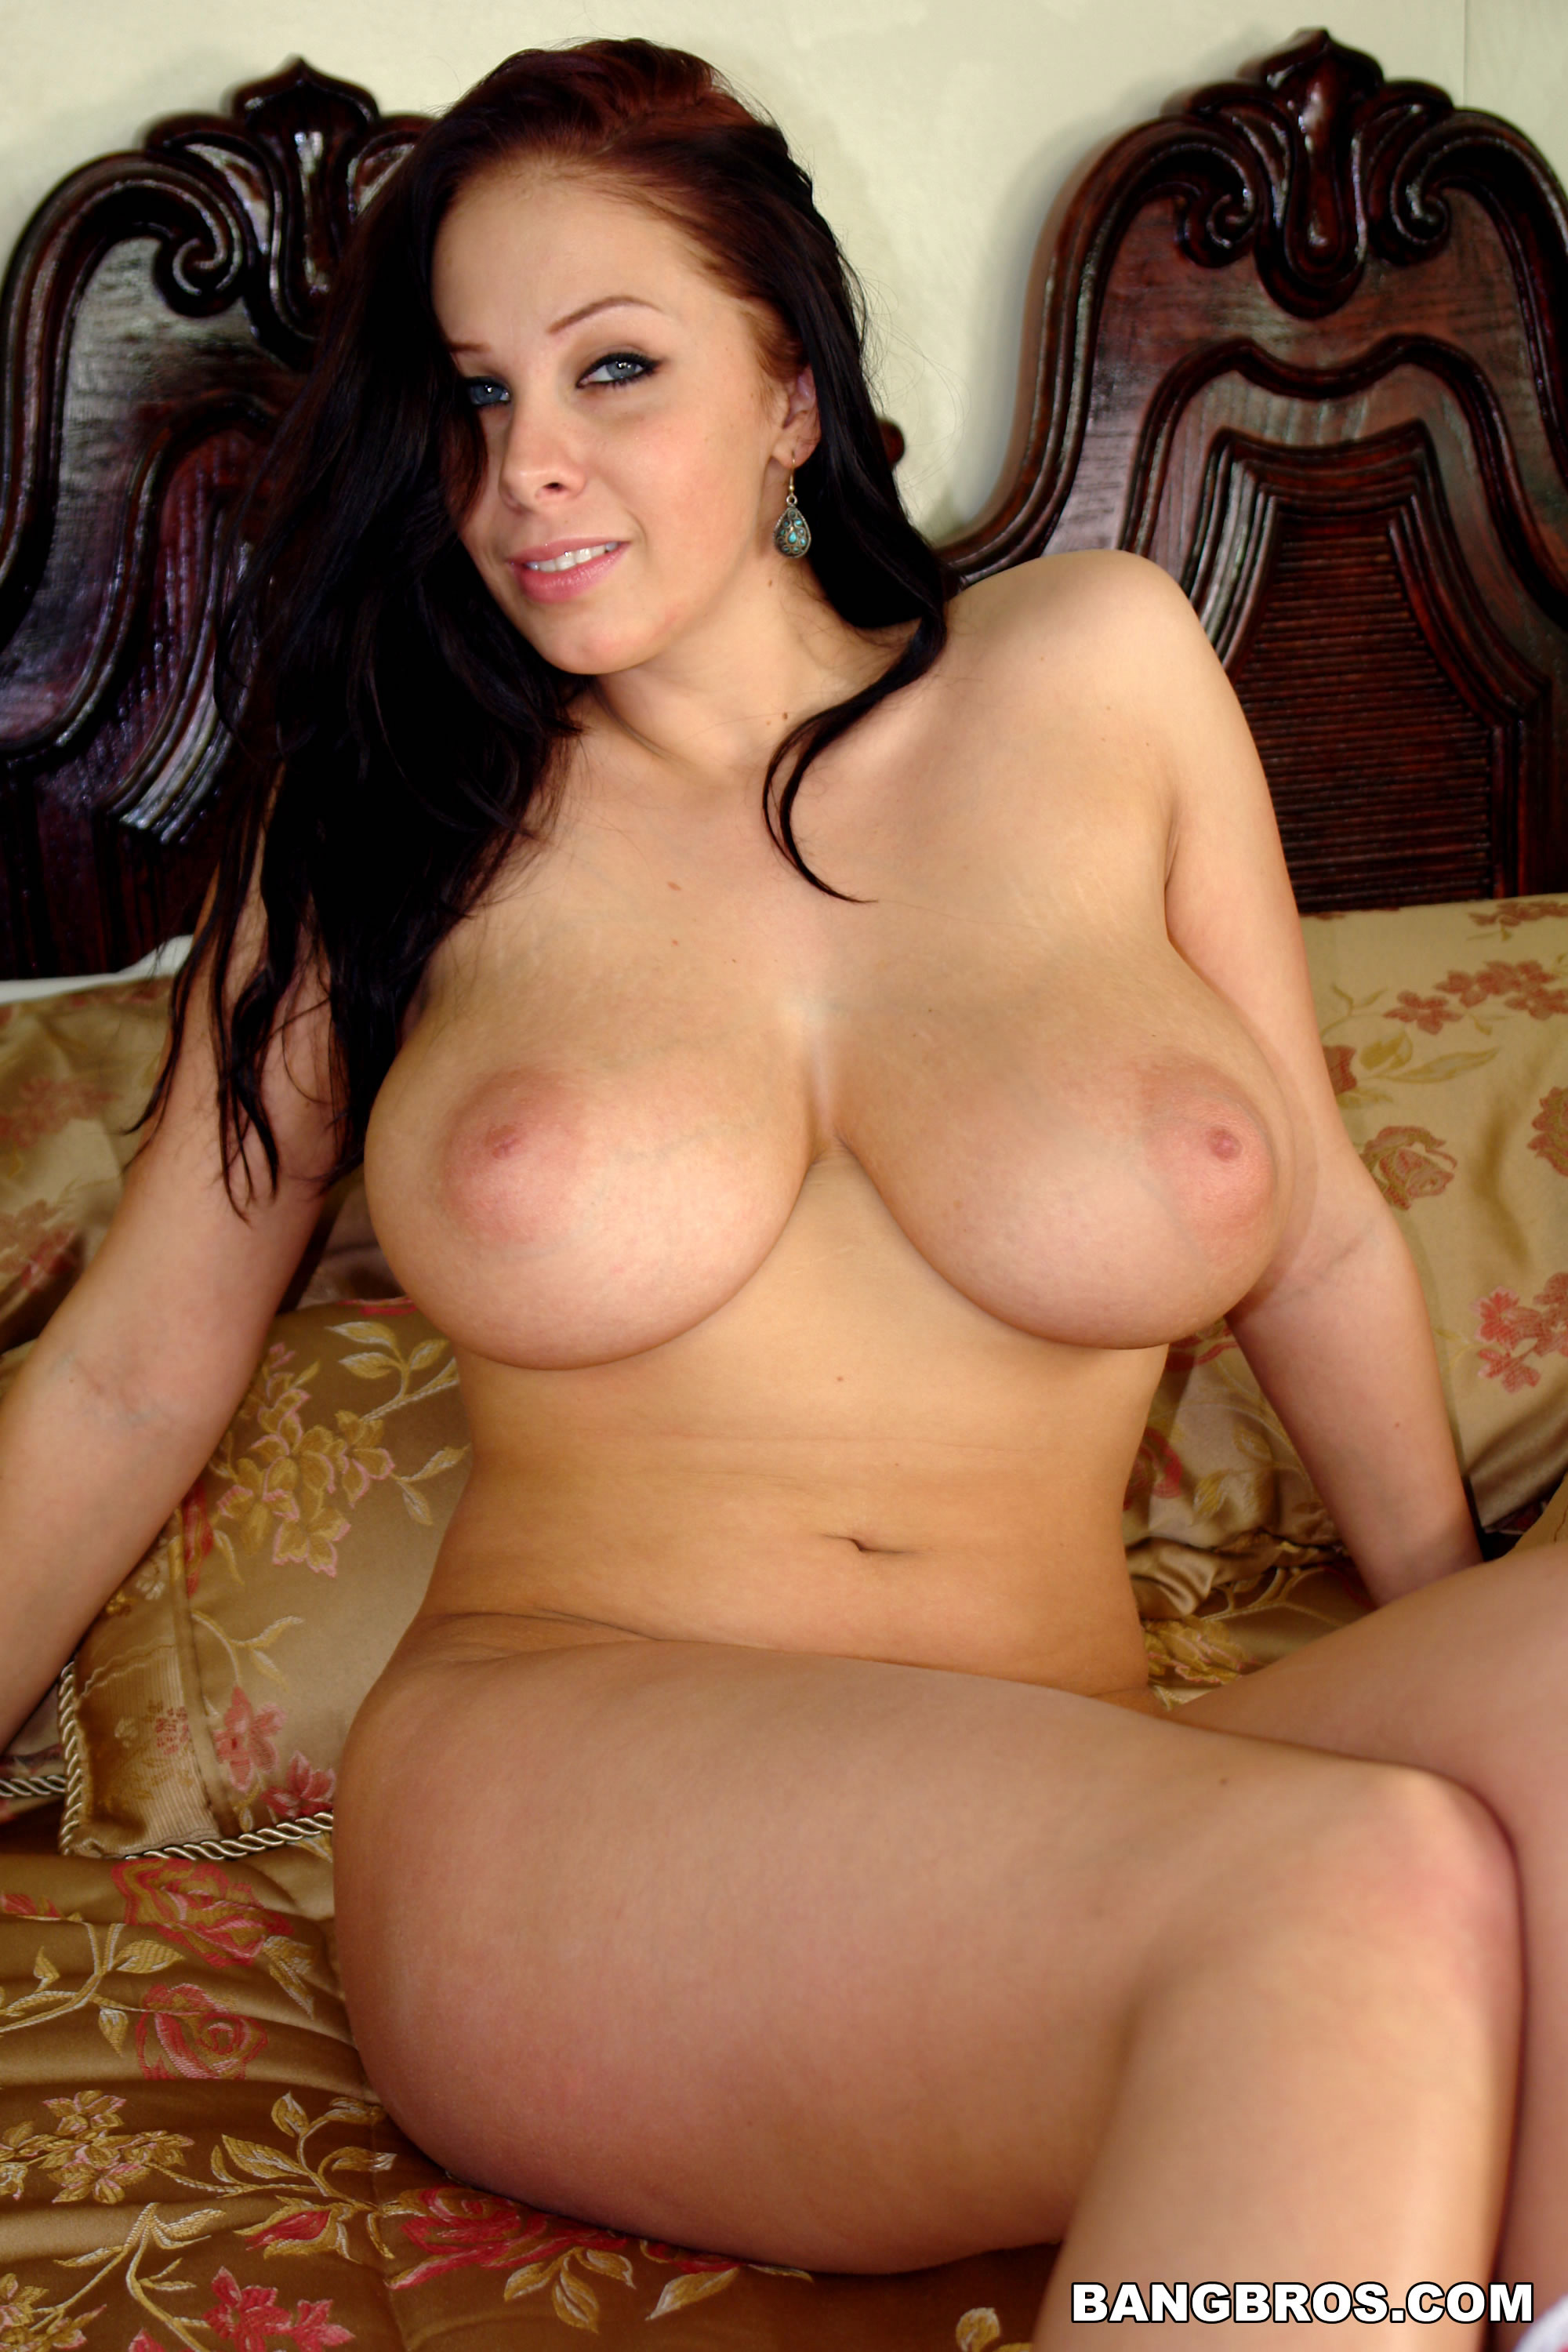 gianna michaels walking nude